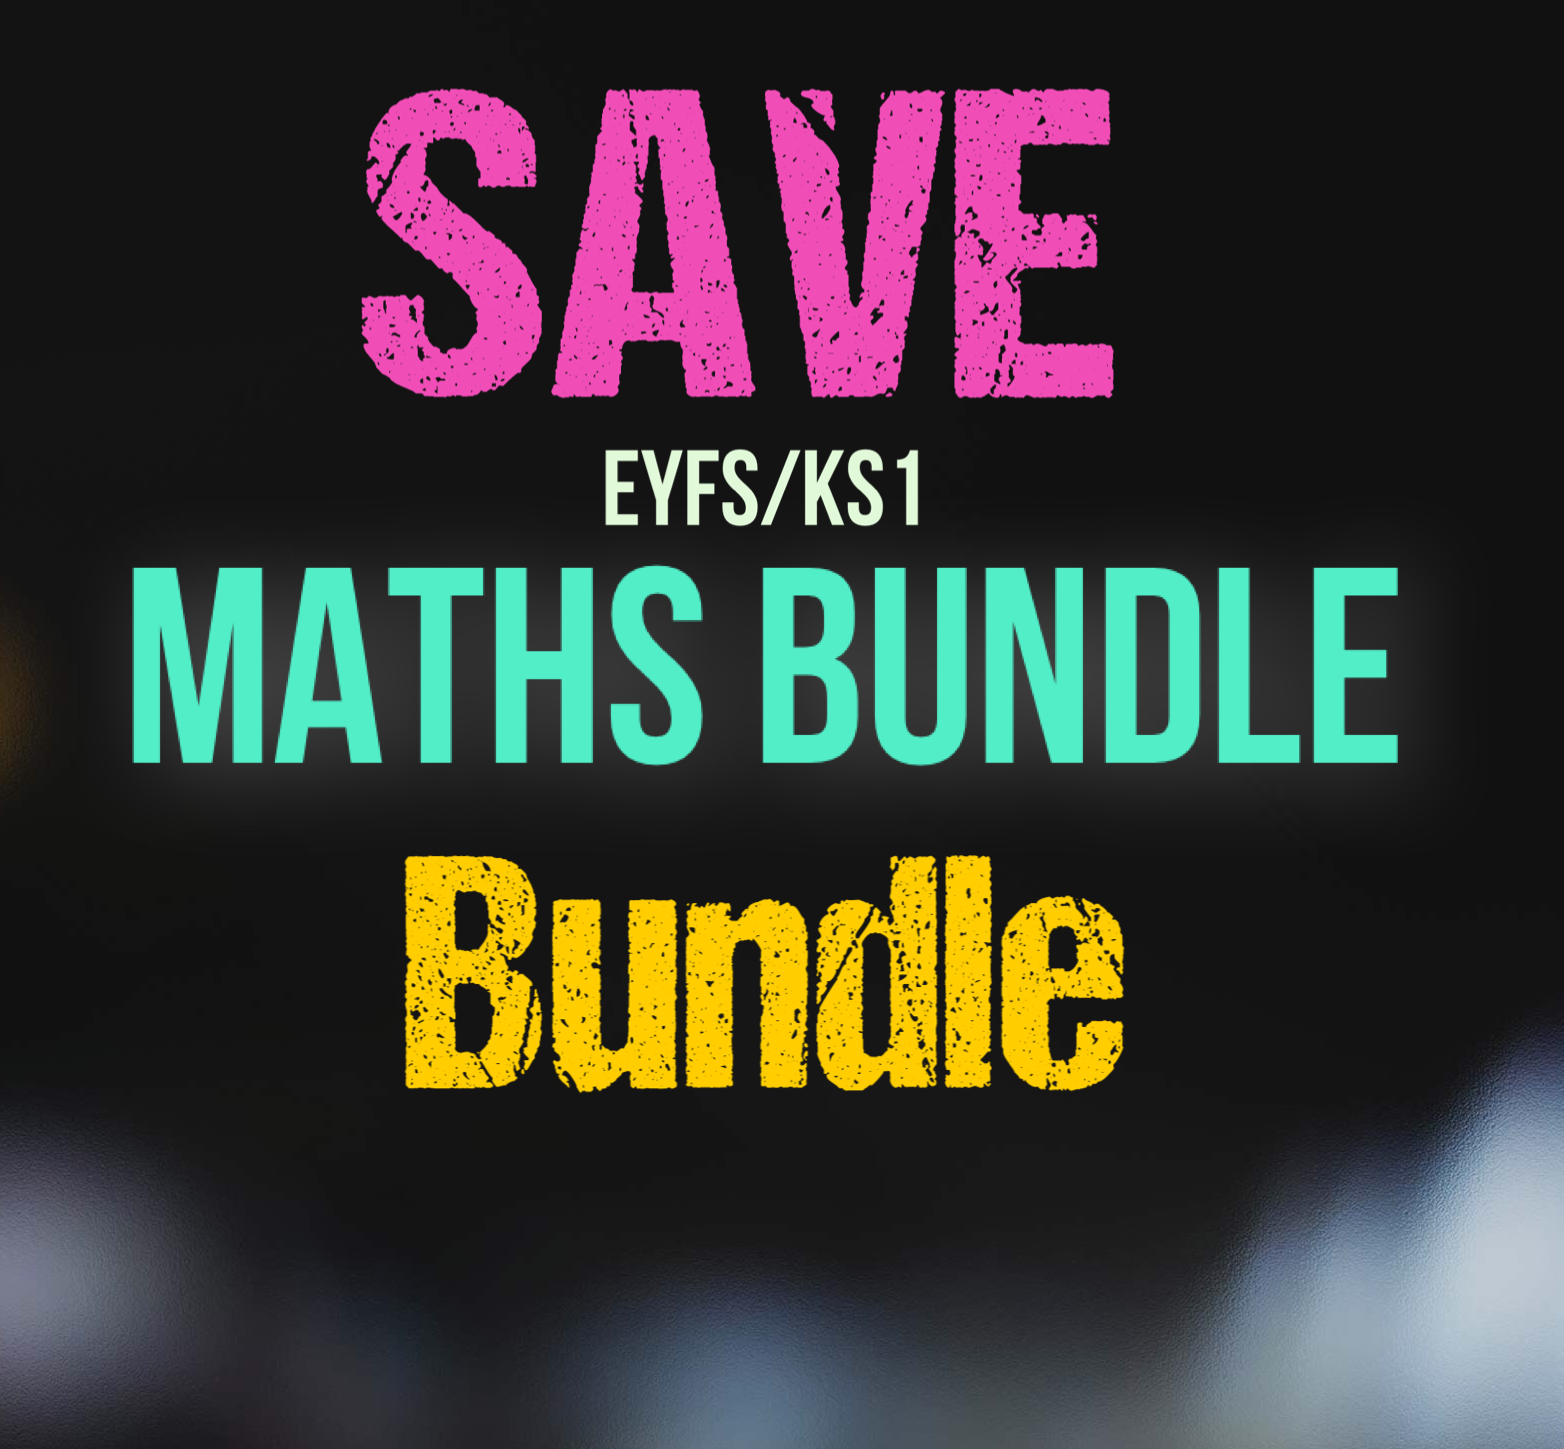 Maths Bundle for EYFS/KS1